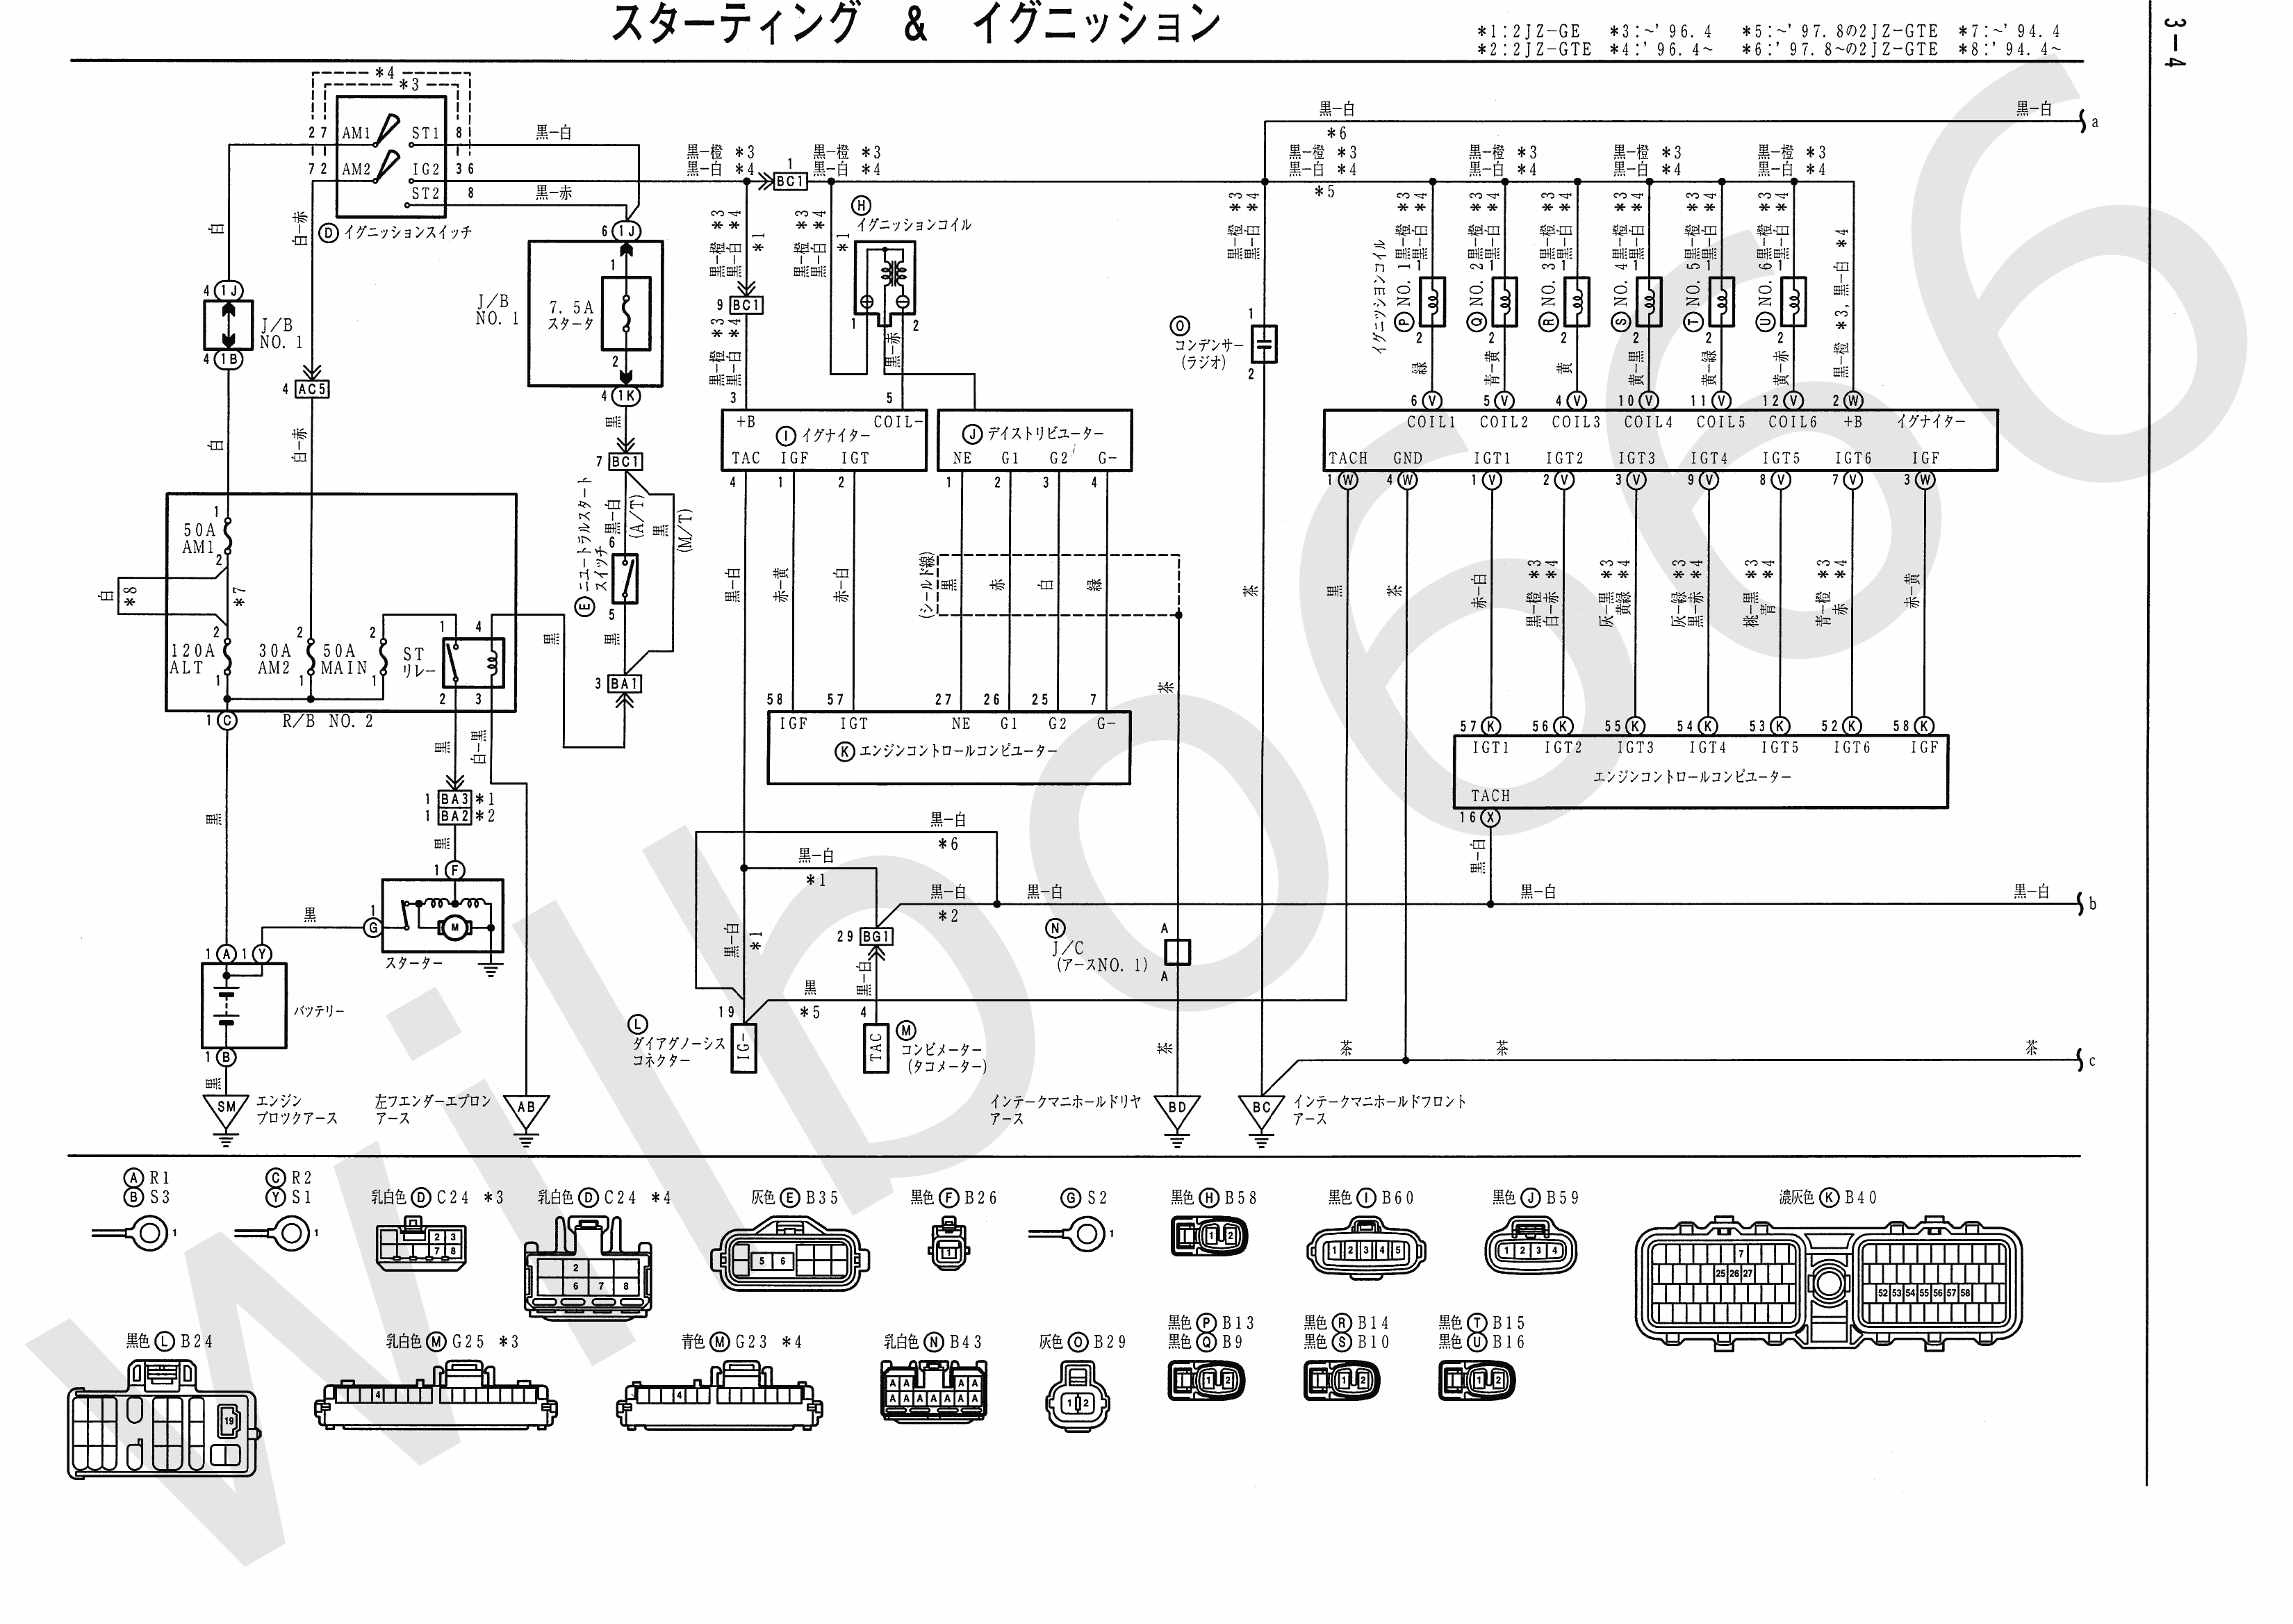 JZA80 Electrical Wiring Diagram 6742505 3 4 wilbo666 2jz ge jza80 supra engine wiring toyota highlander ecu wiring diagram at reclaimingppi.co